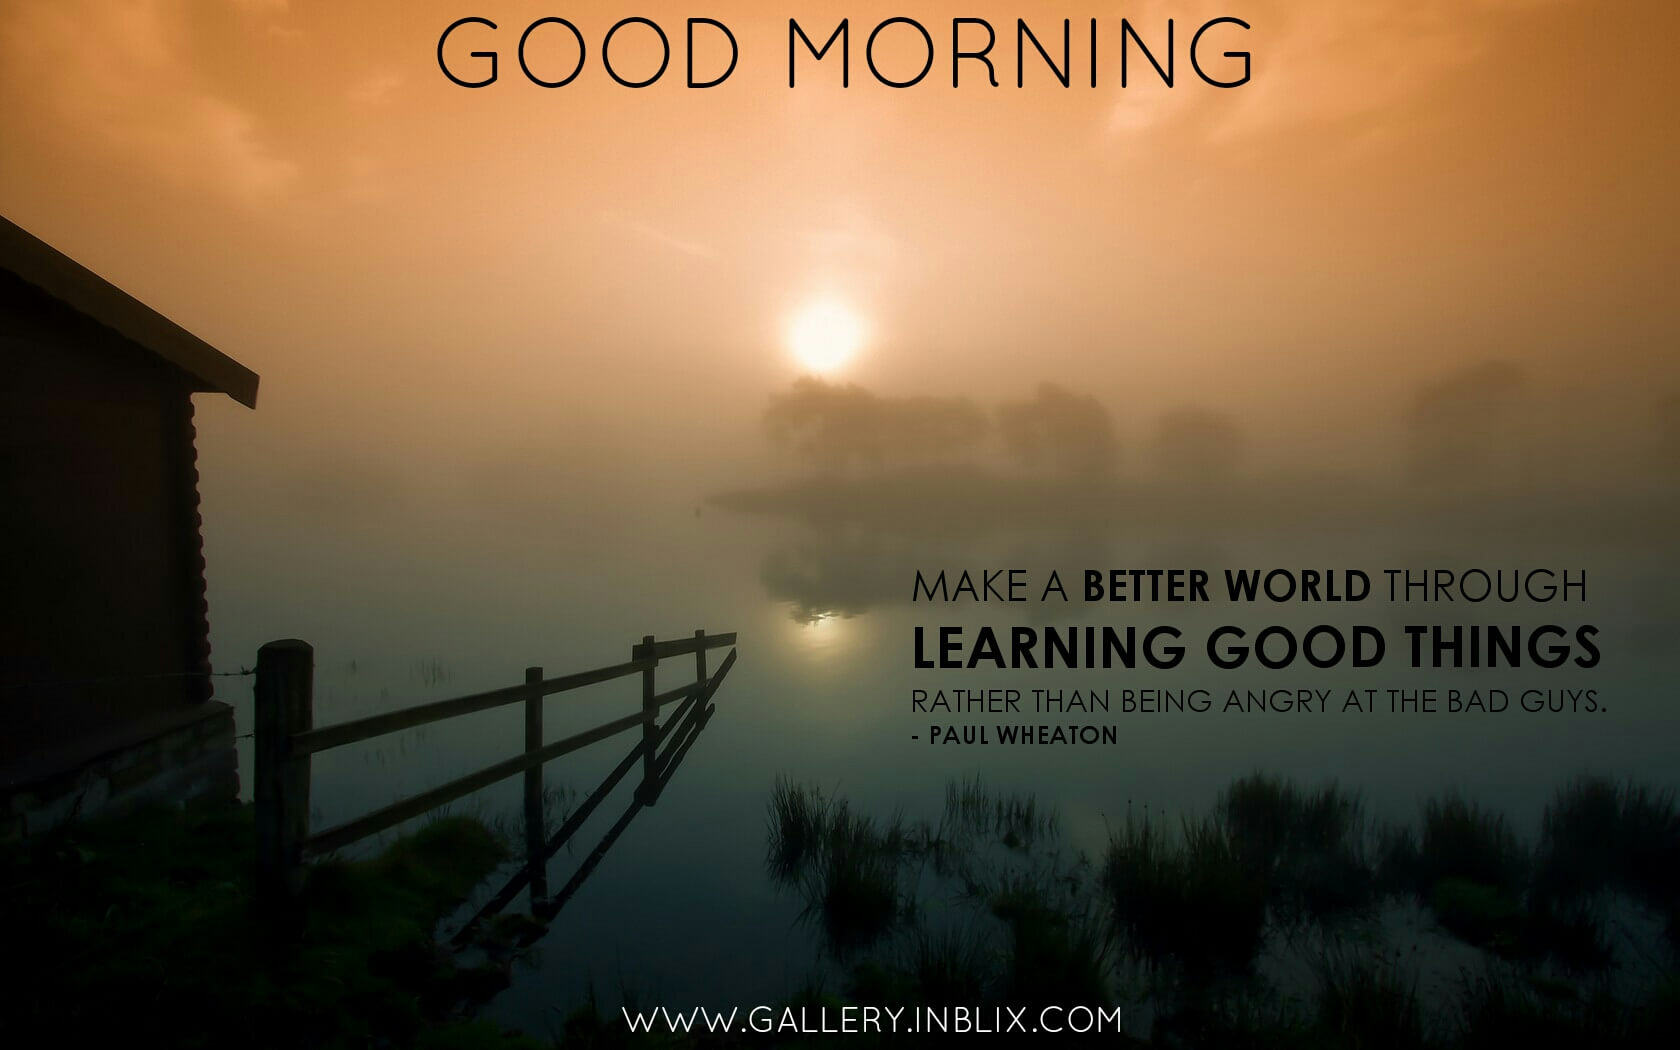 Make a better world through learning good things rather than being angry at the bad guys.